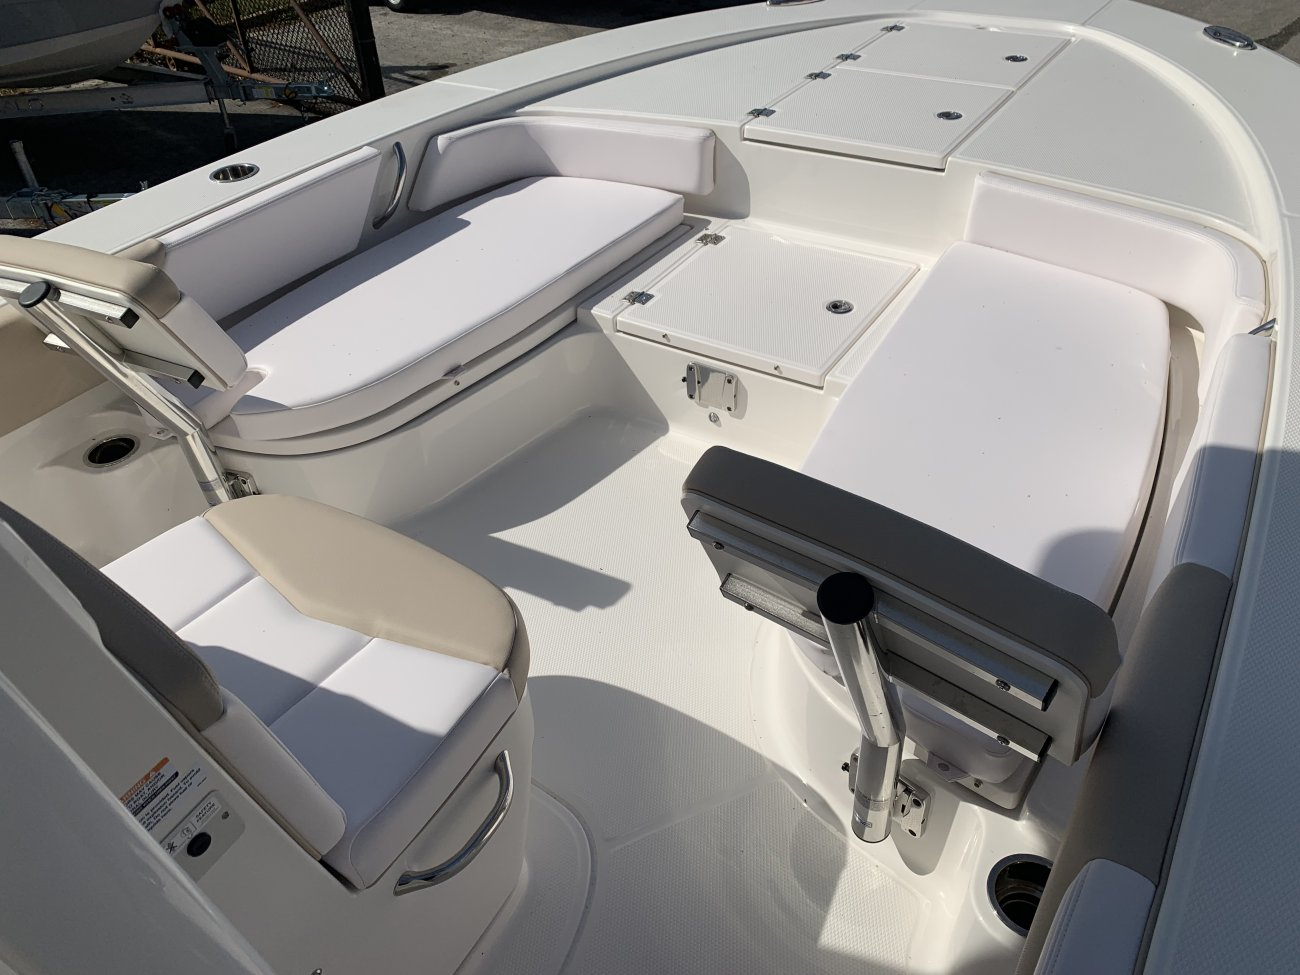 A 246 Sky Deck Cayman Bay Boat is a Power and could be classed as a Bay Boat, Center Console, Freshwater Fishing, High Performance, Saltwater Fishing, Runabout,  or, just an overall Great Boat!